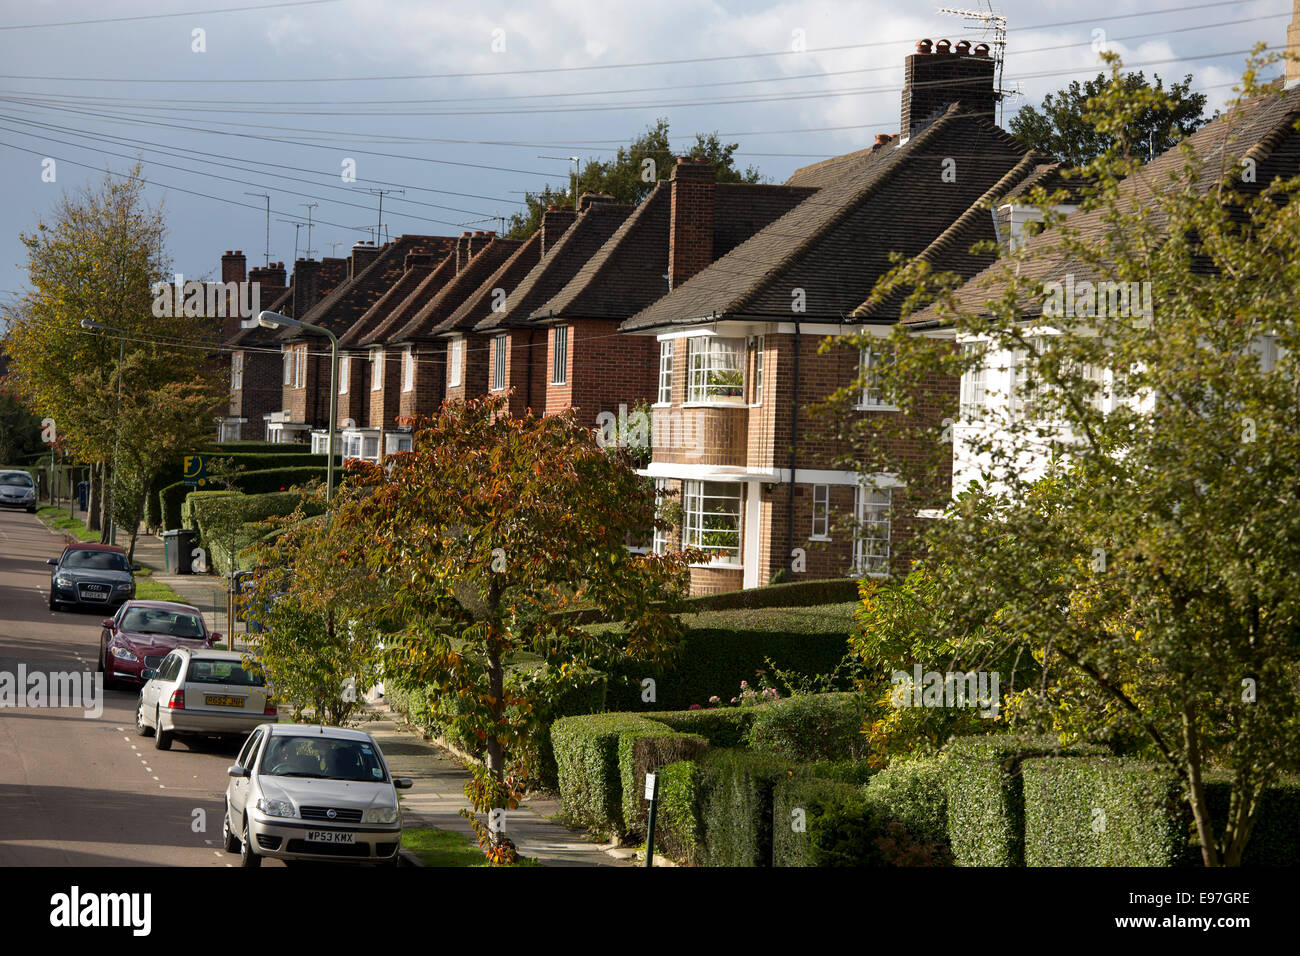 Hampstead Garden Suburb suburban street house home Stock Photo ...